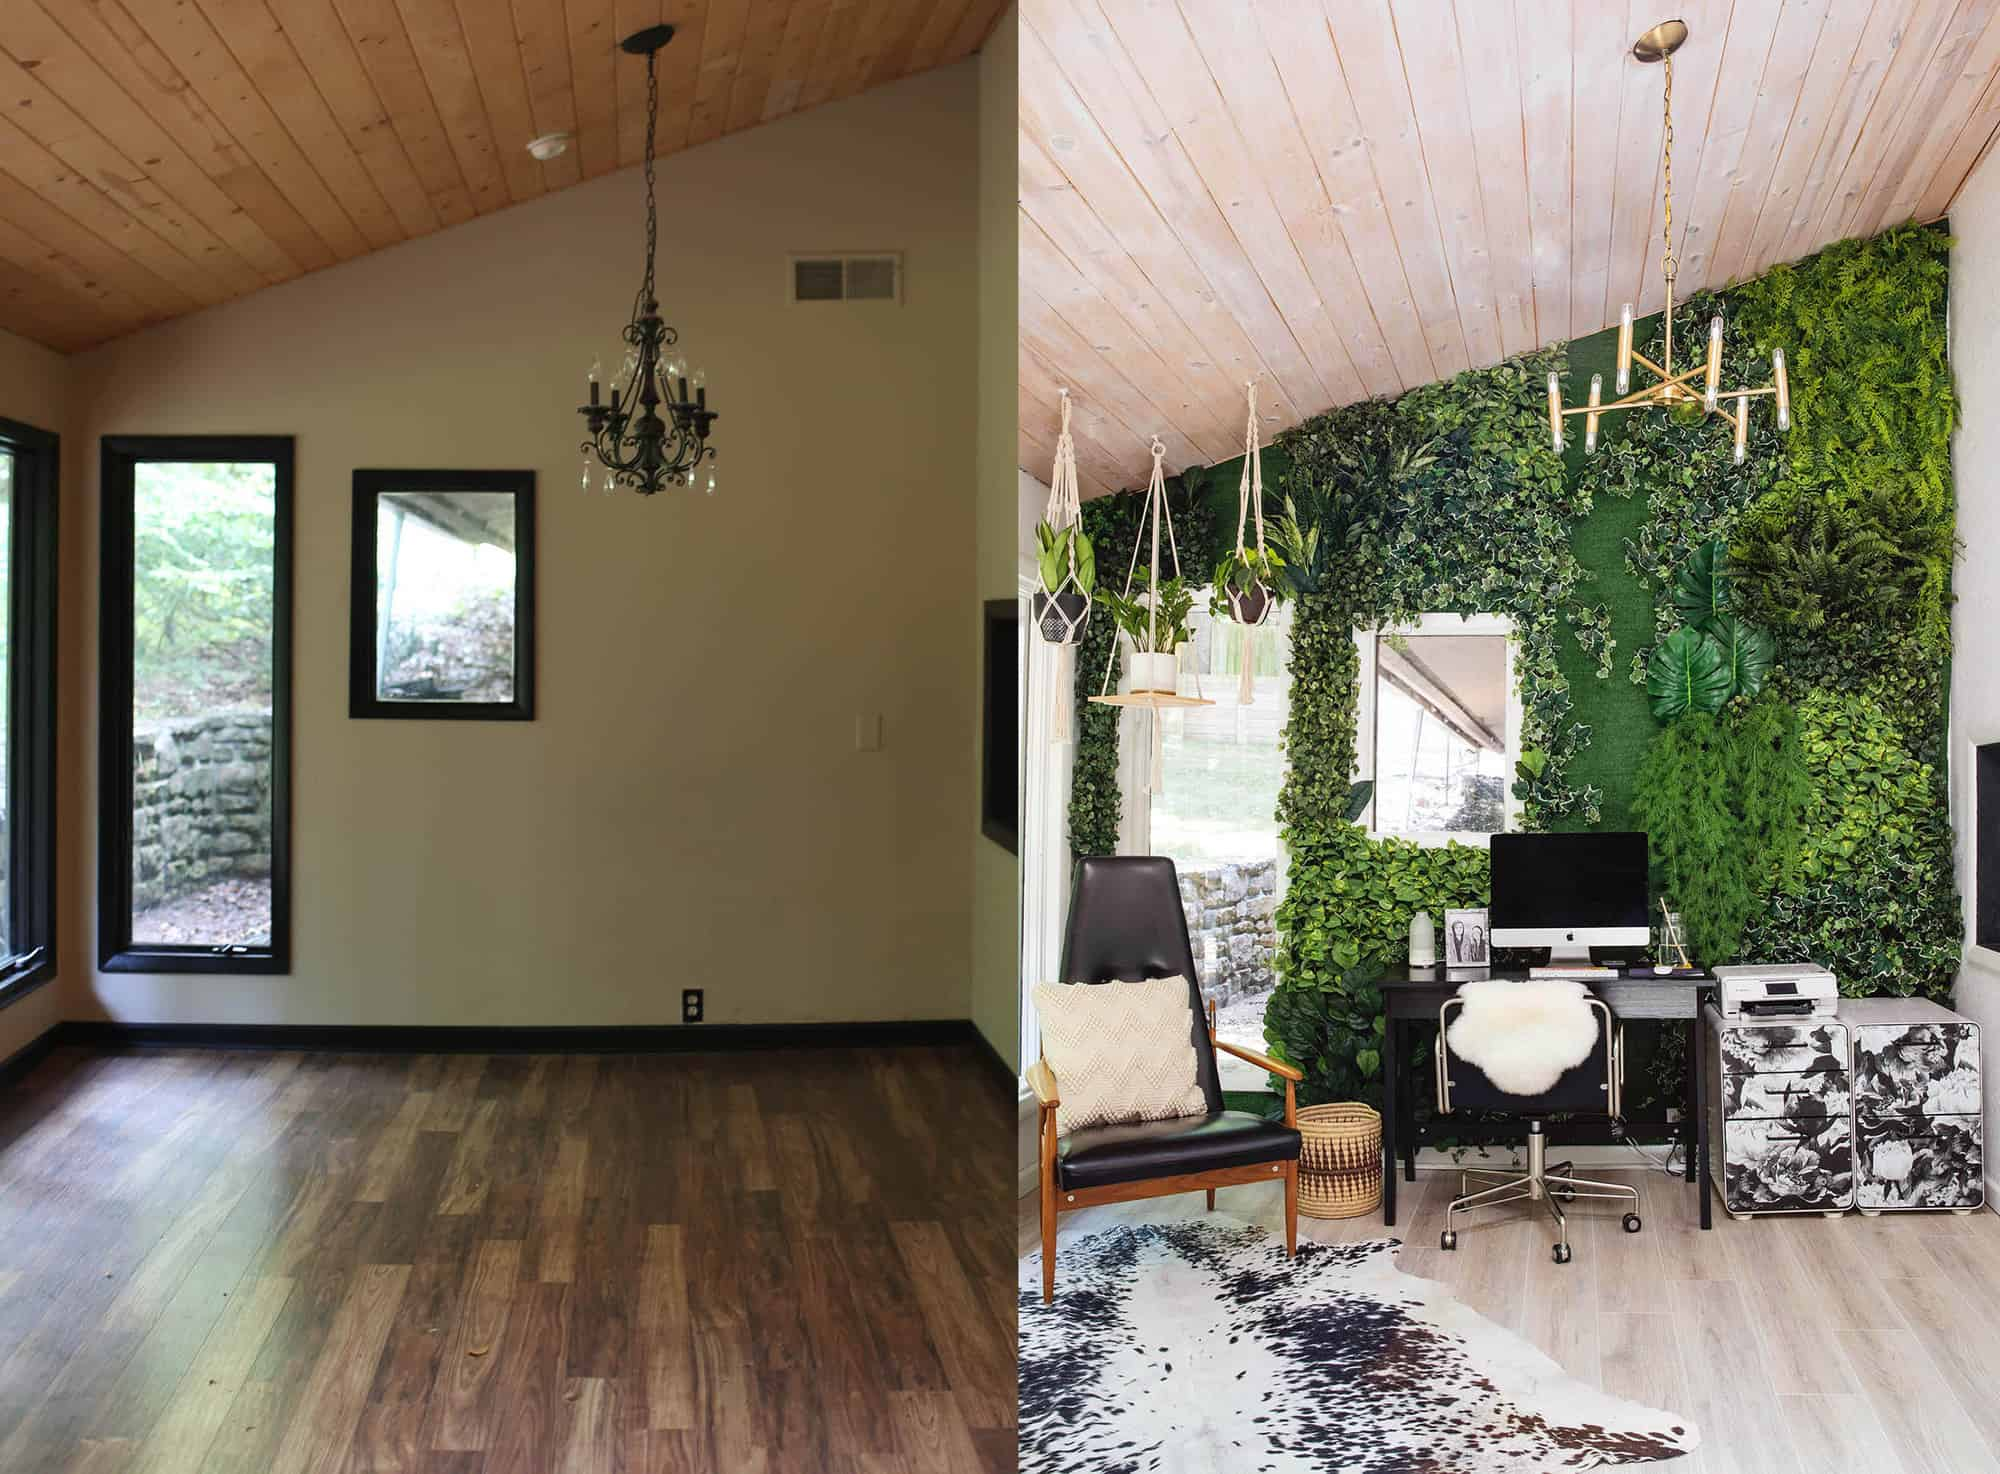 Here Is A Before And After Of This Room. Since Moving In, We Updated The  Floors And I Also Hand Stained The Ceilings To Lighten Up The Space  (throughout The ...